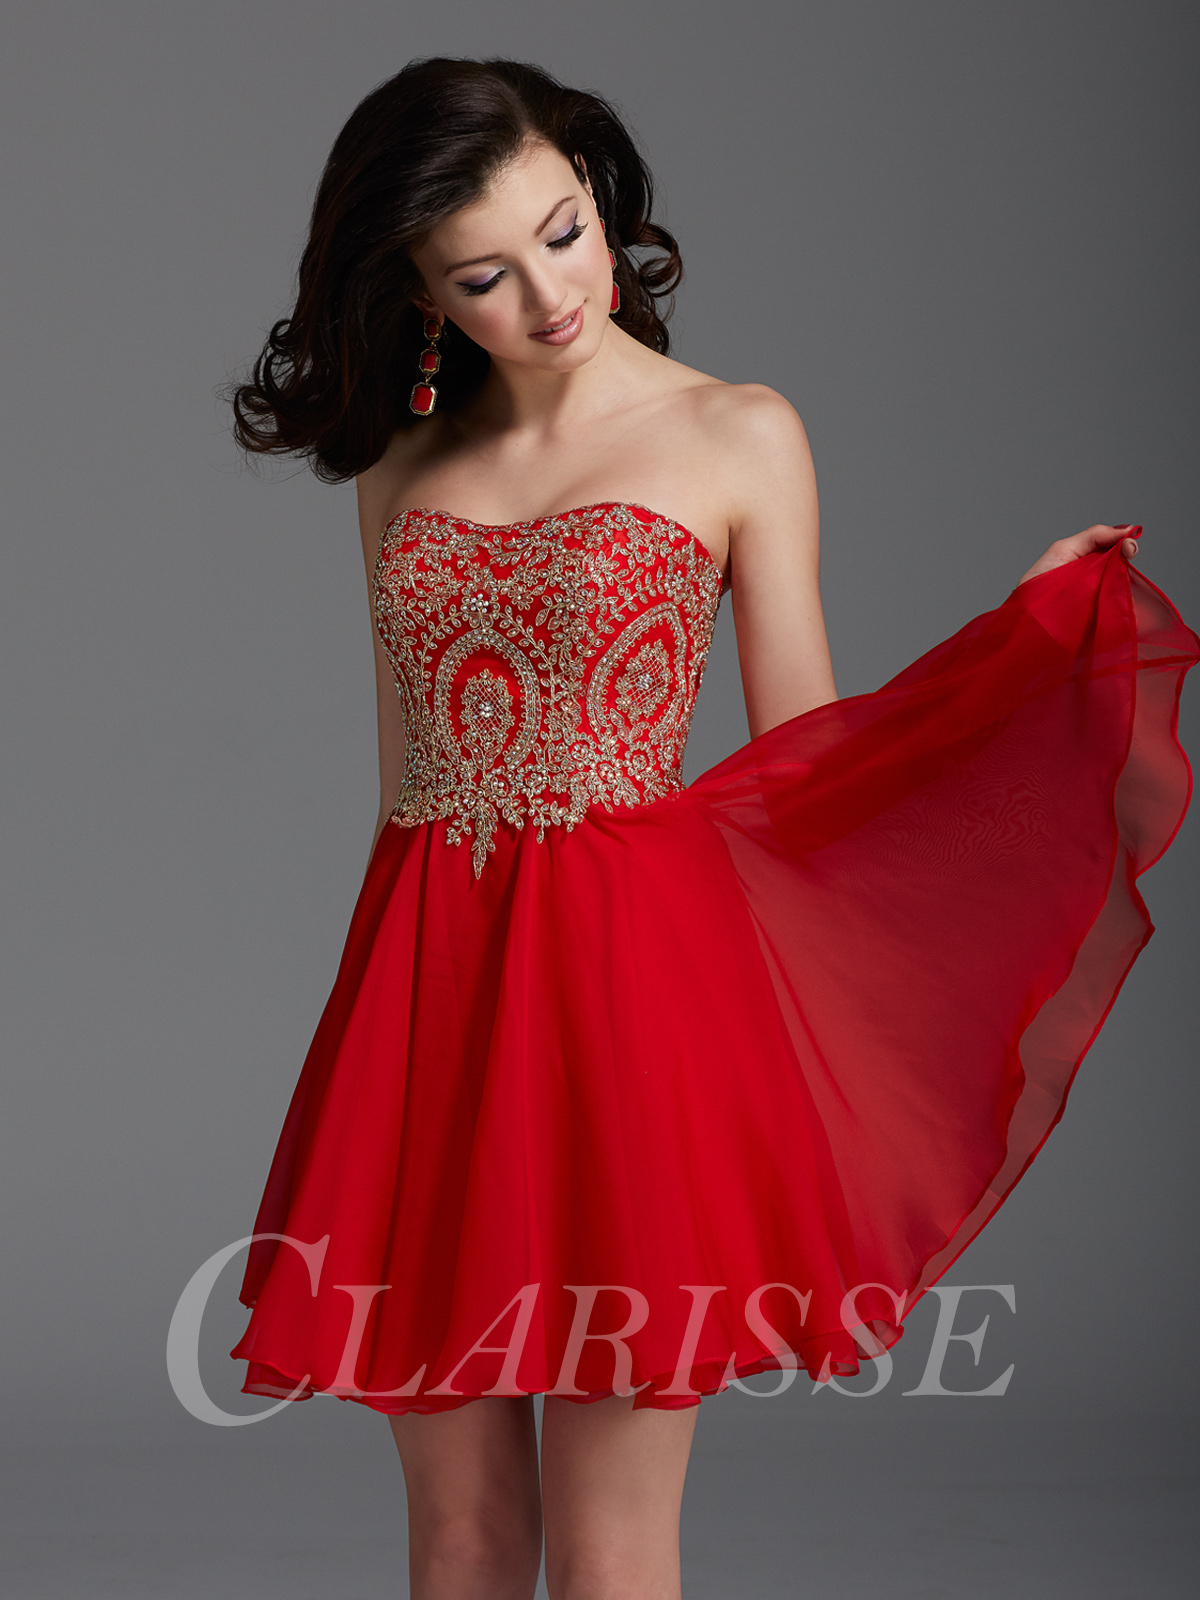 026465250c ... Clarisse Short Homecoming and Prom Dress 2900 ...